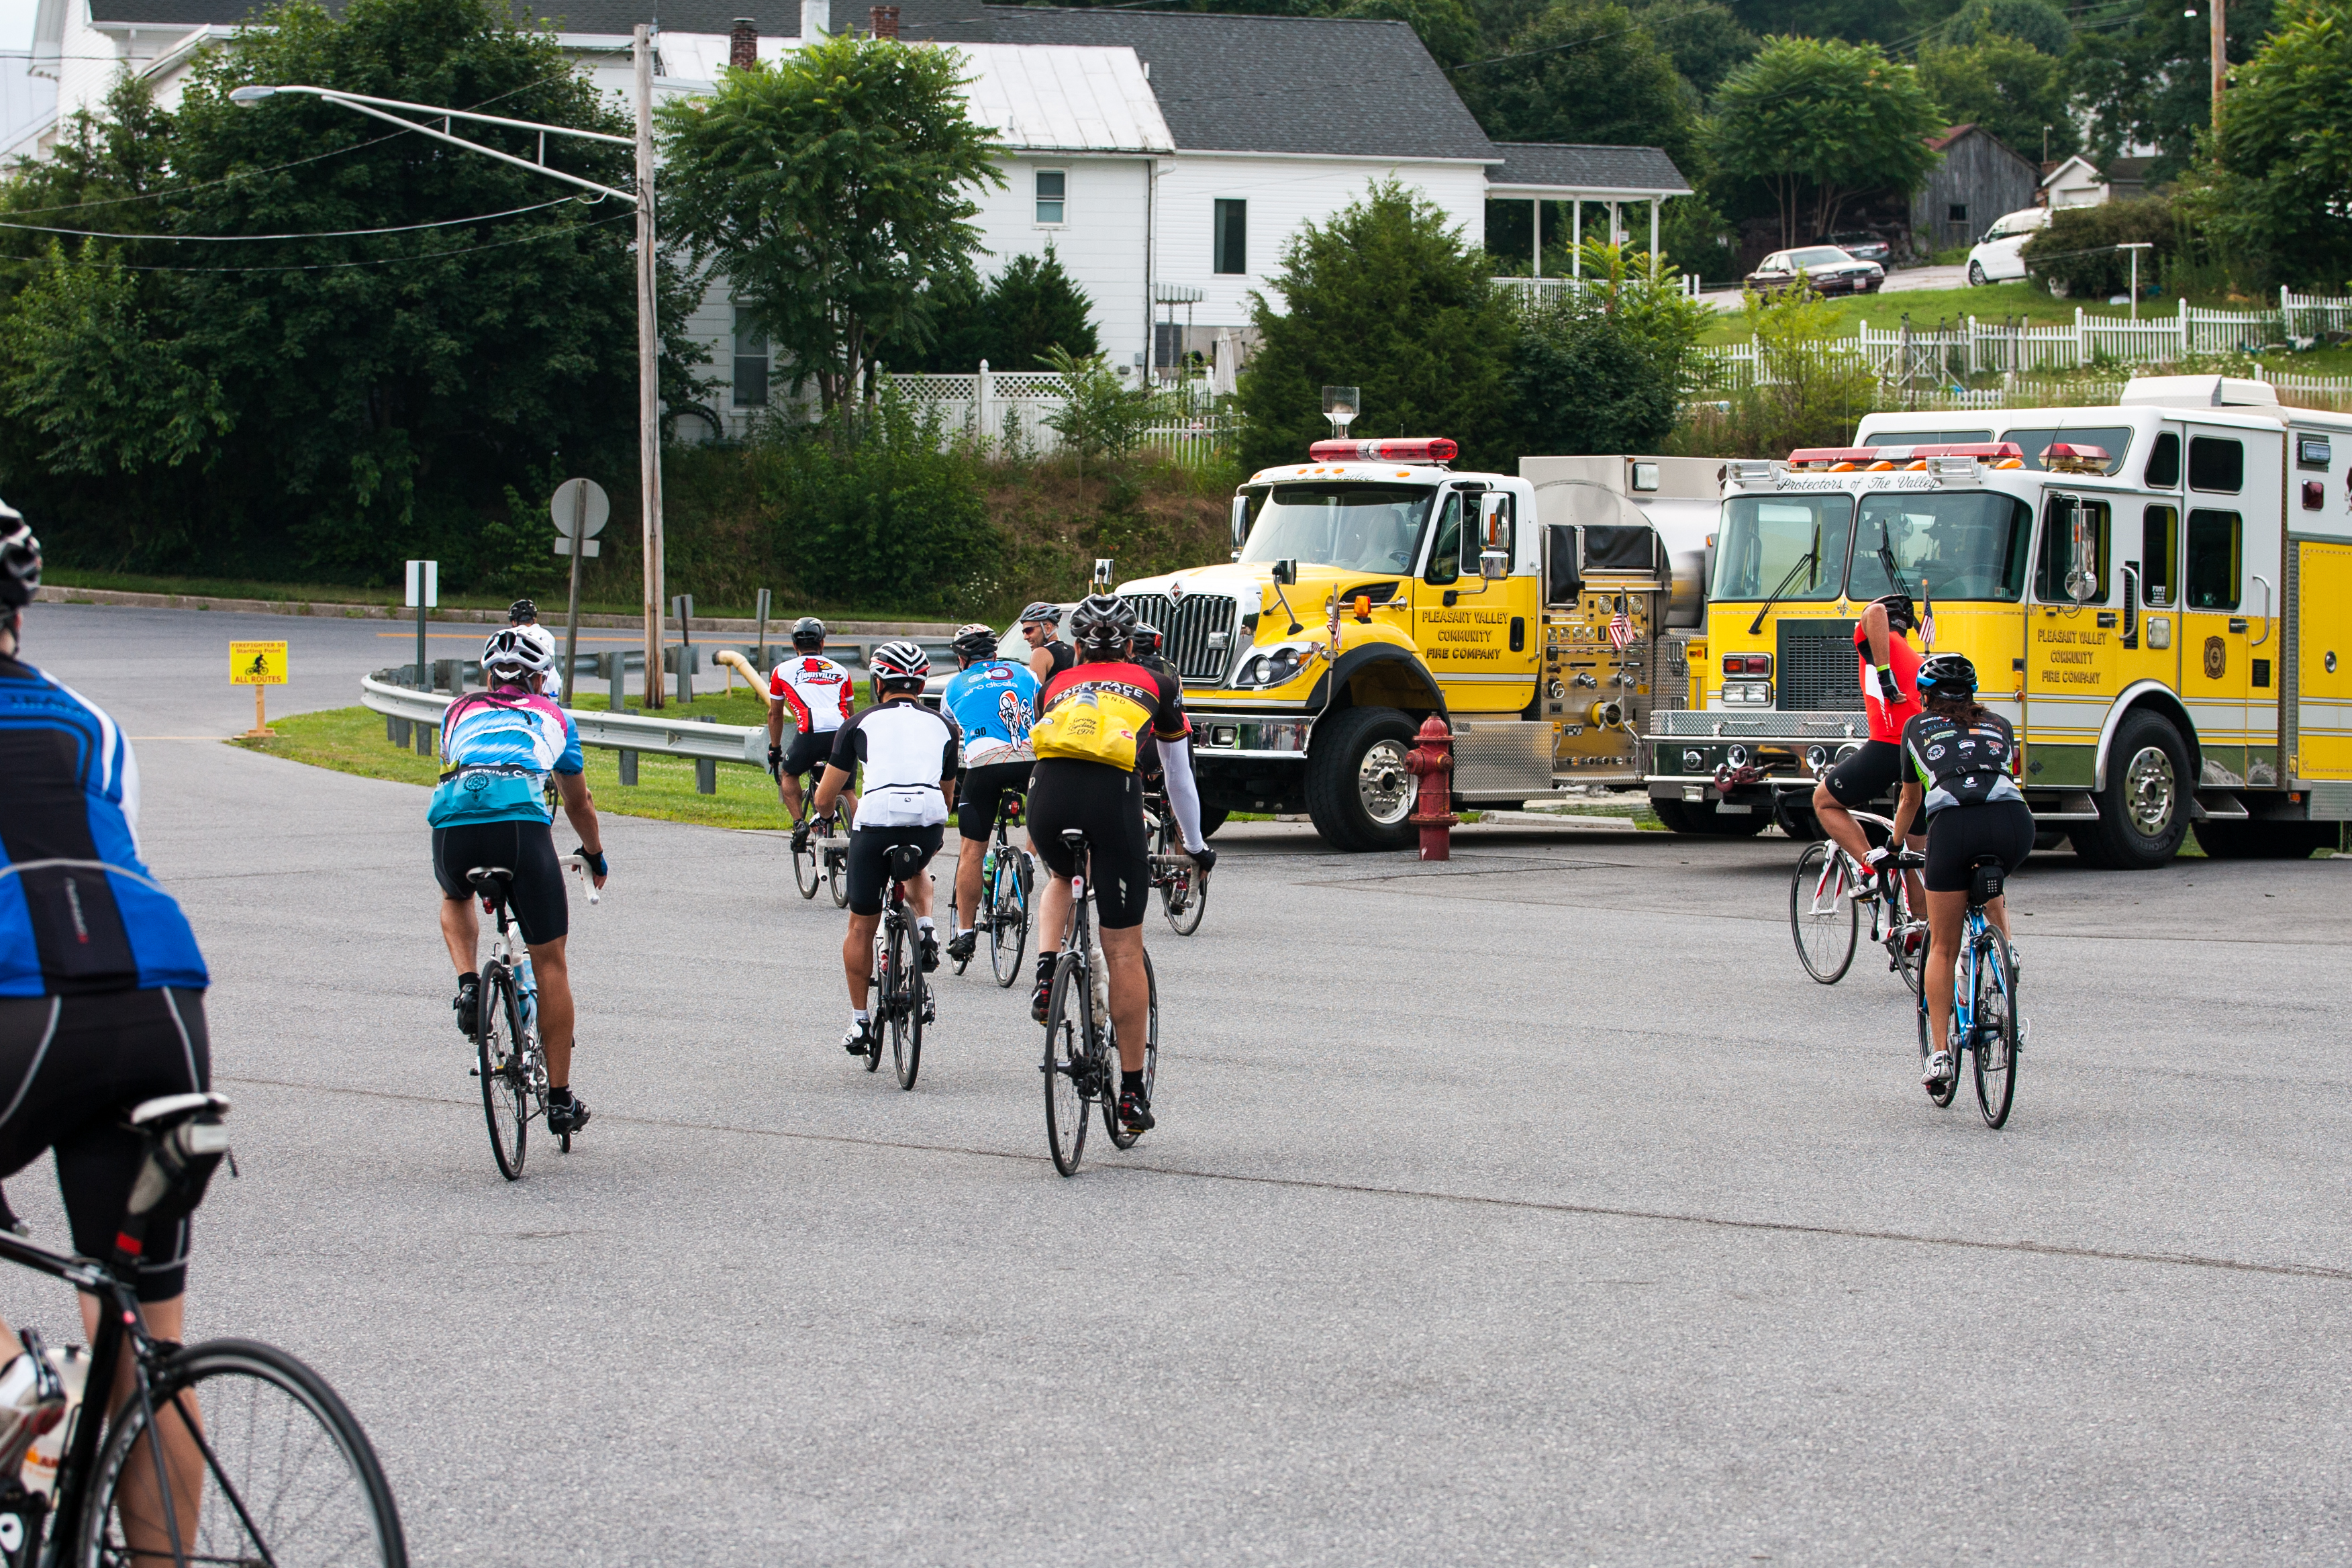 Firefighter 50 Bicycle Ride – July 21, 2019